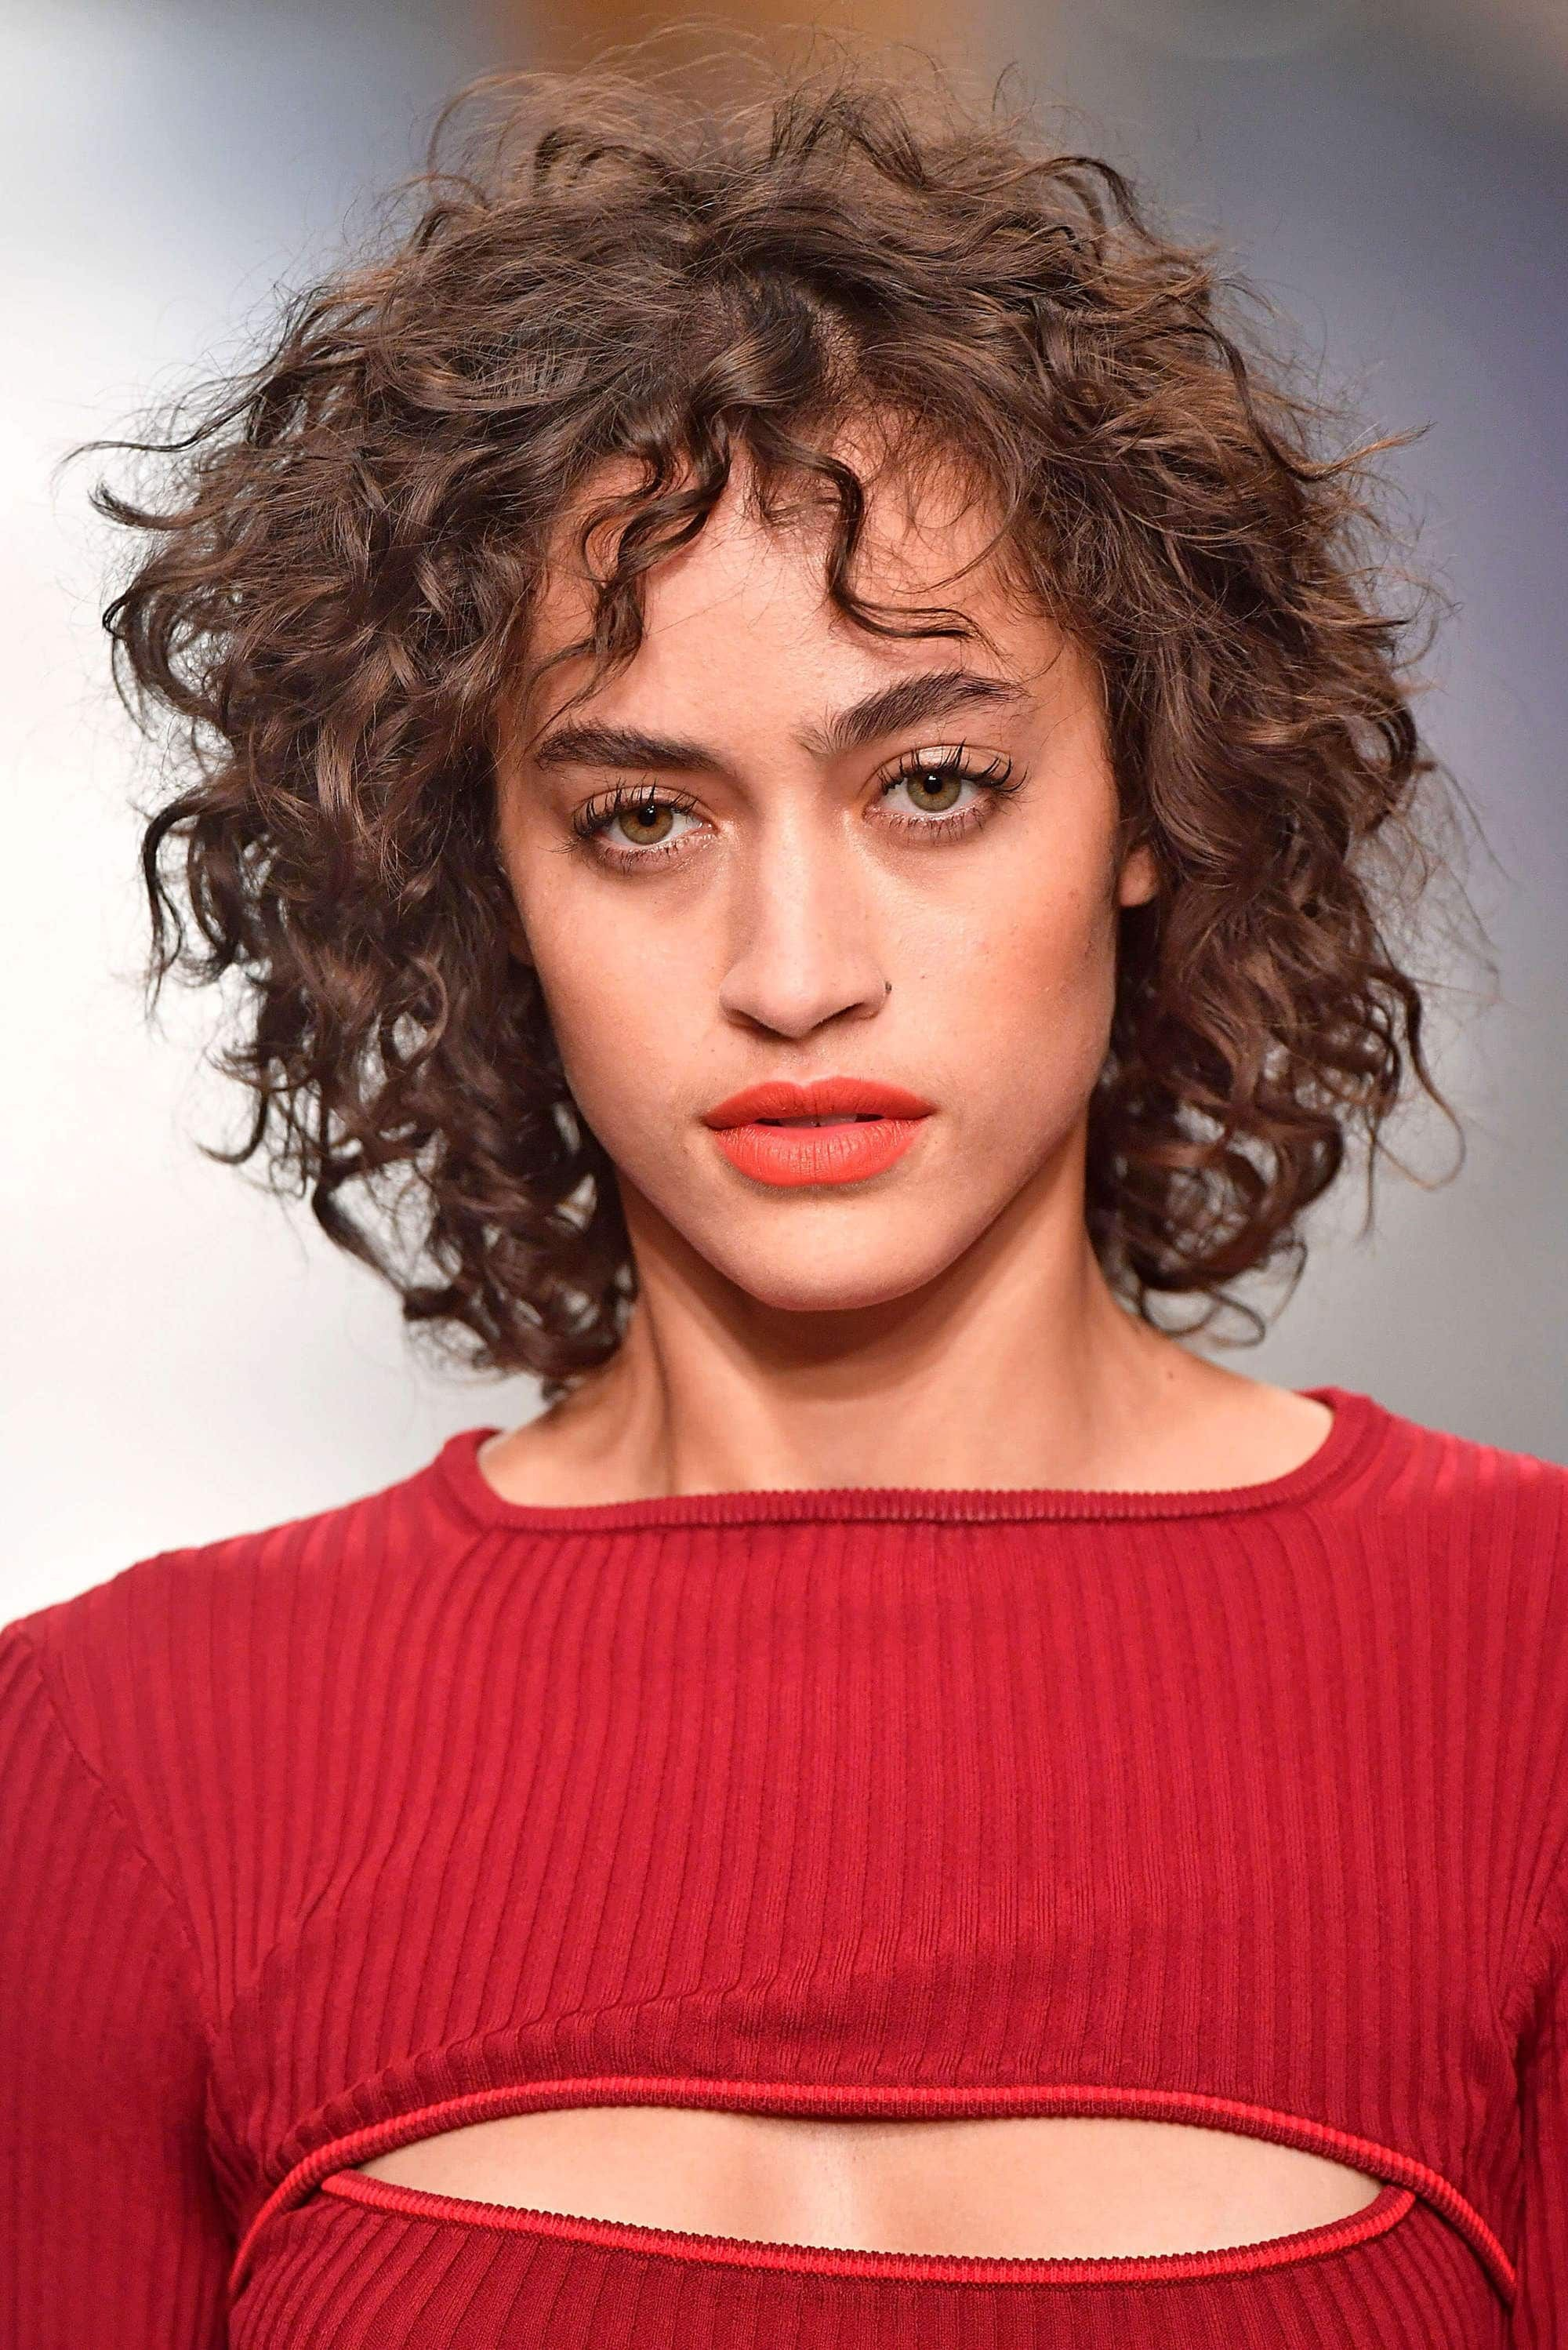 The Best 22 Trendy And Quick Hairstyles For Short Hair Pictures